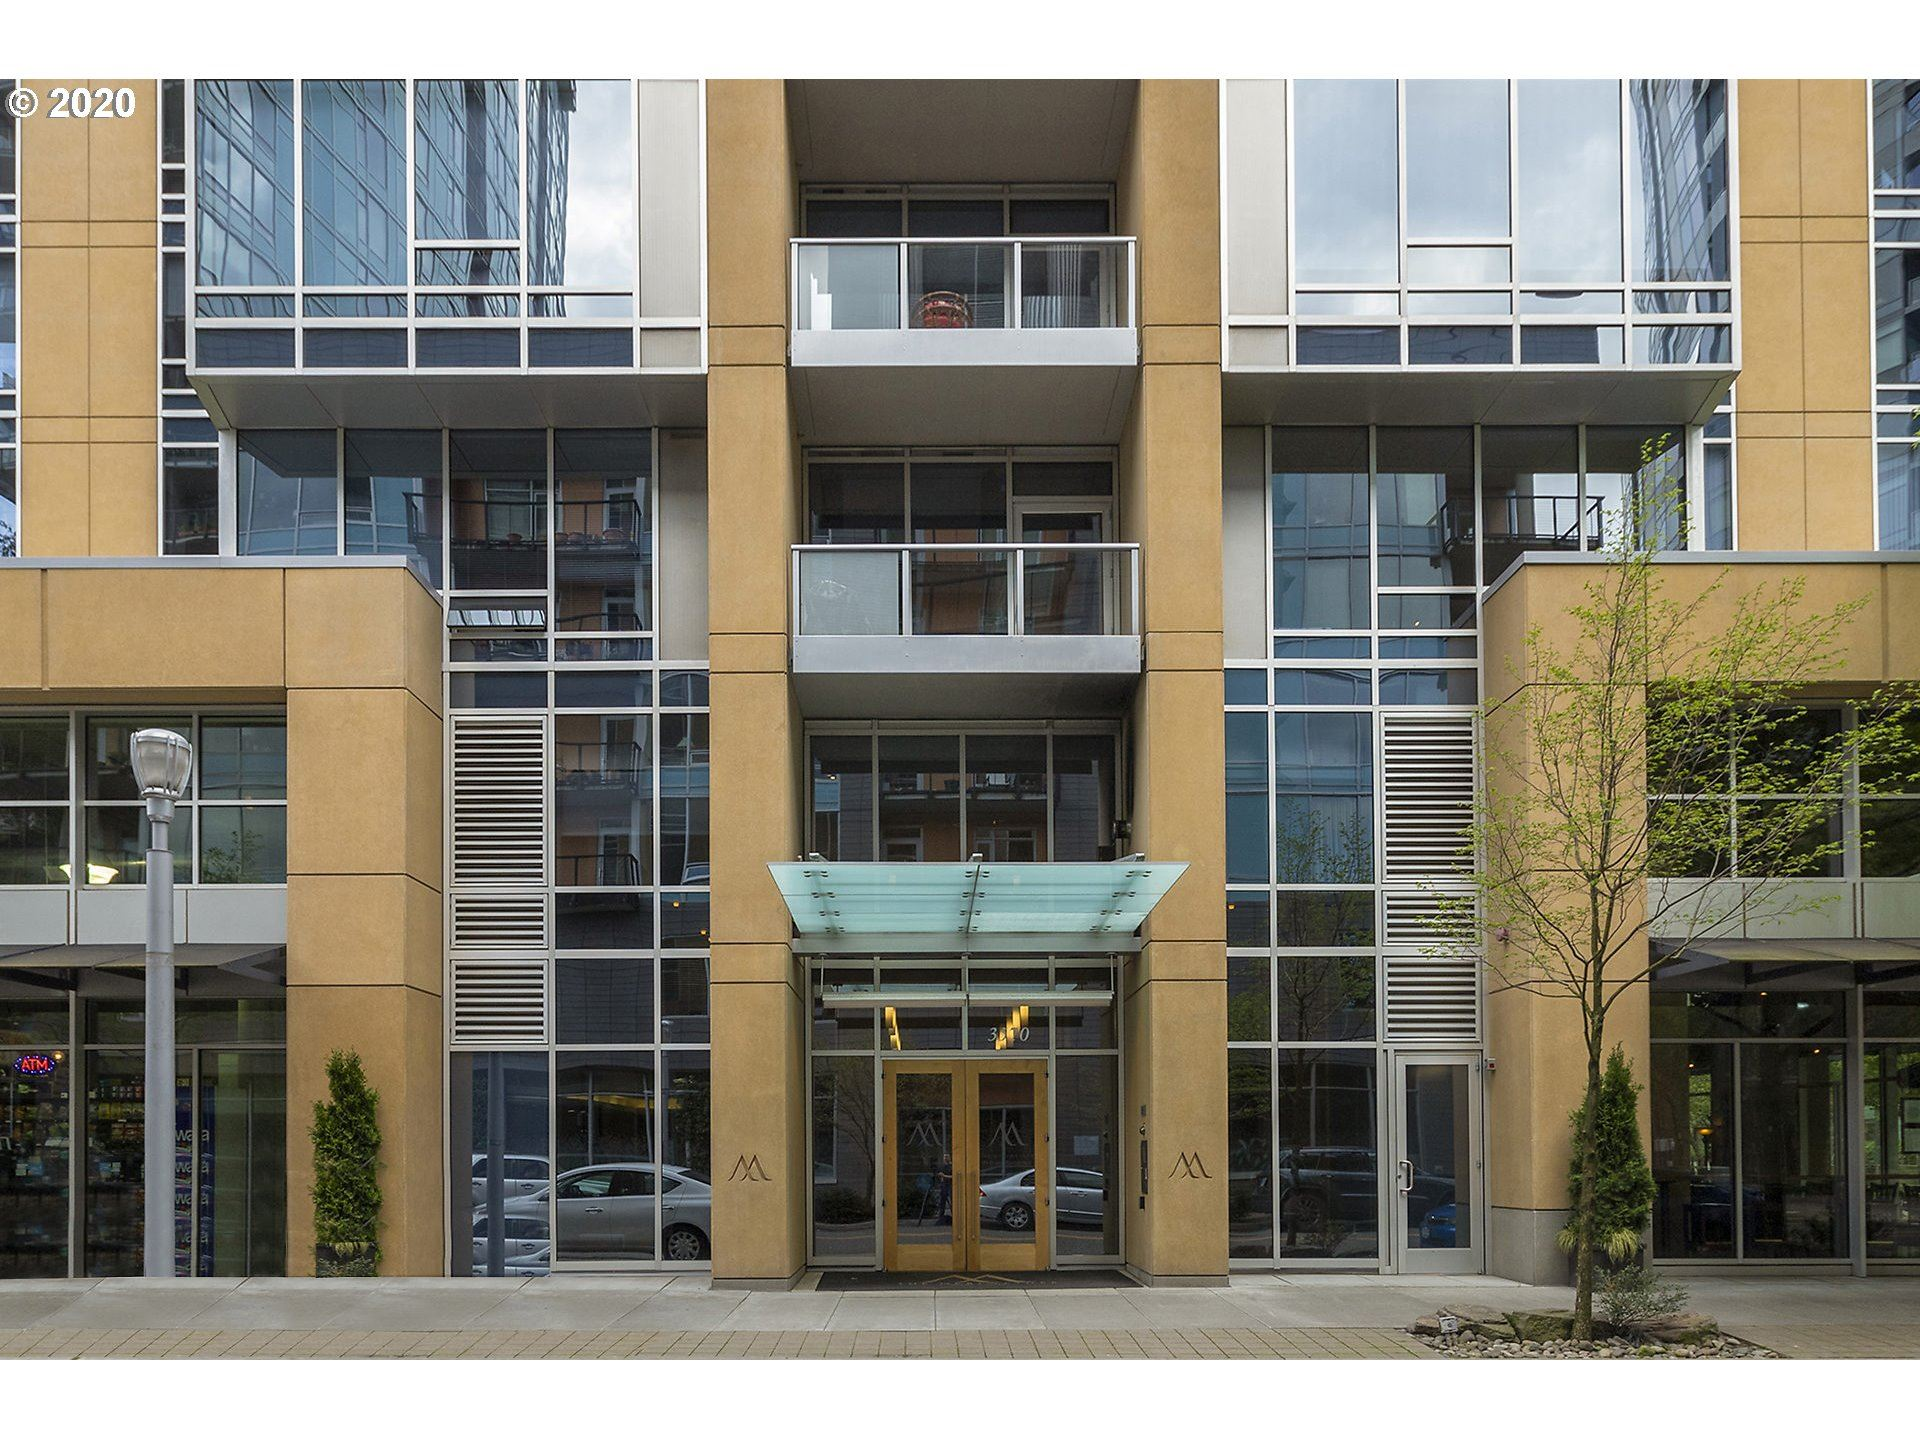 3570 SW RIVER PKWY NW #409, Portland, OR 97239 - MLS#: 20133057